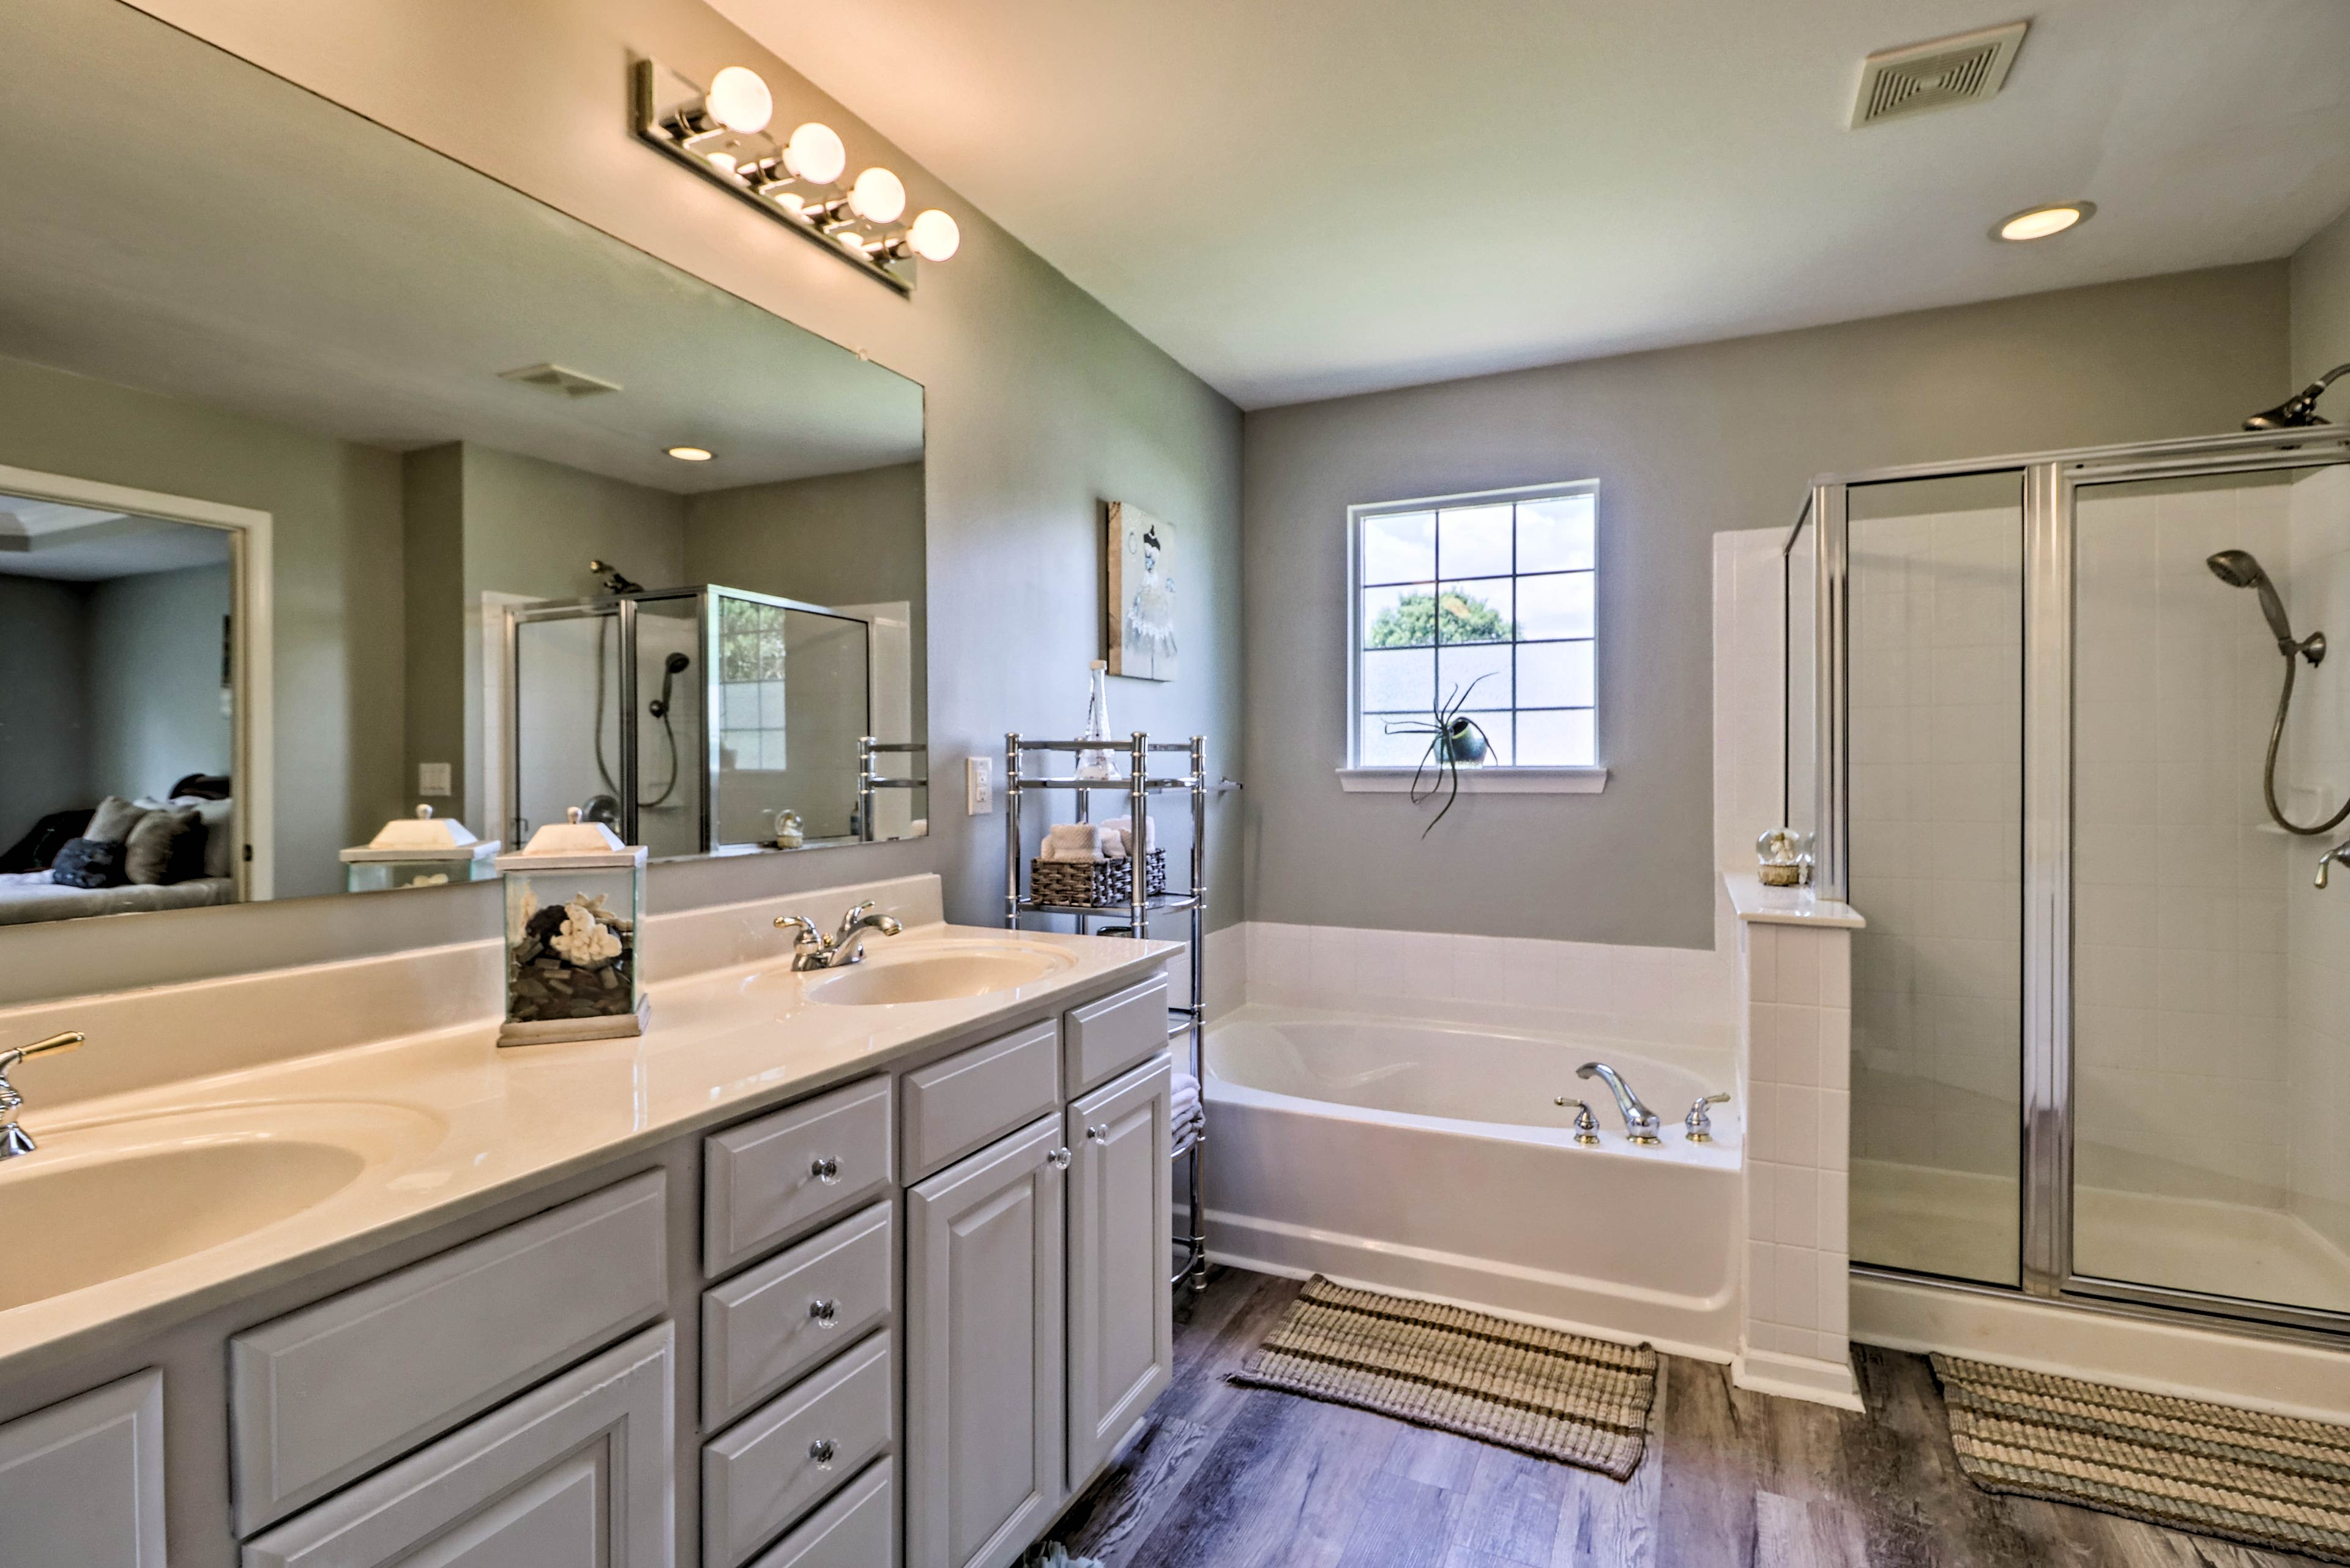 Take your time with your morning routine in the large master bath.